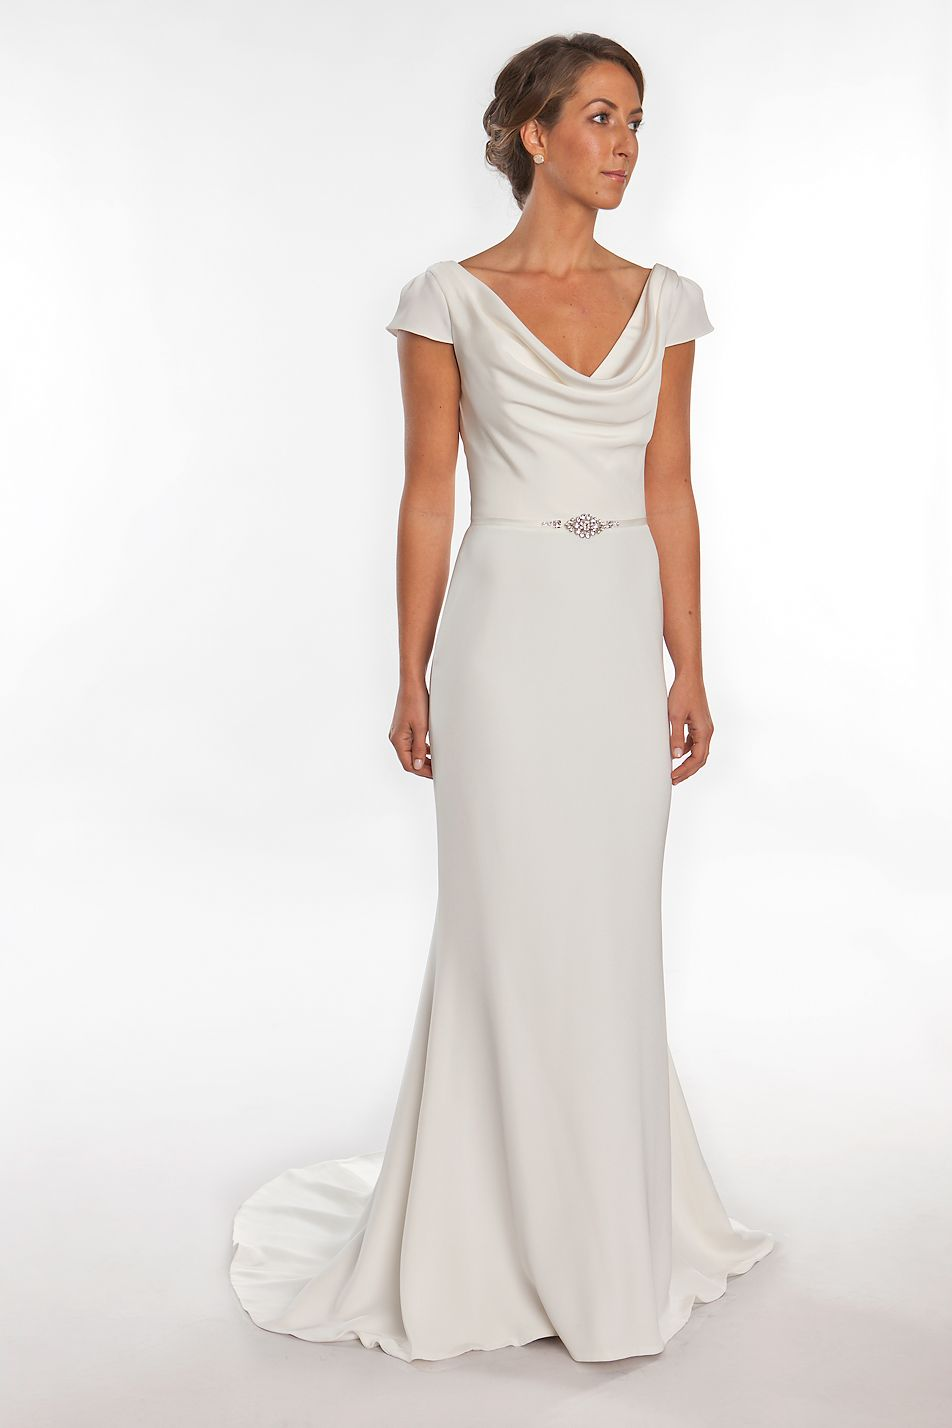 Charlotte Cowl Neck Wedding Dress With Cap Sleeves By Trish Lee